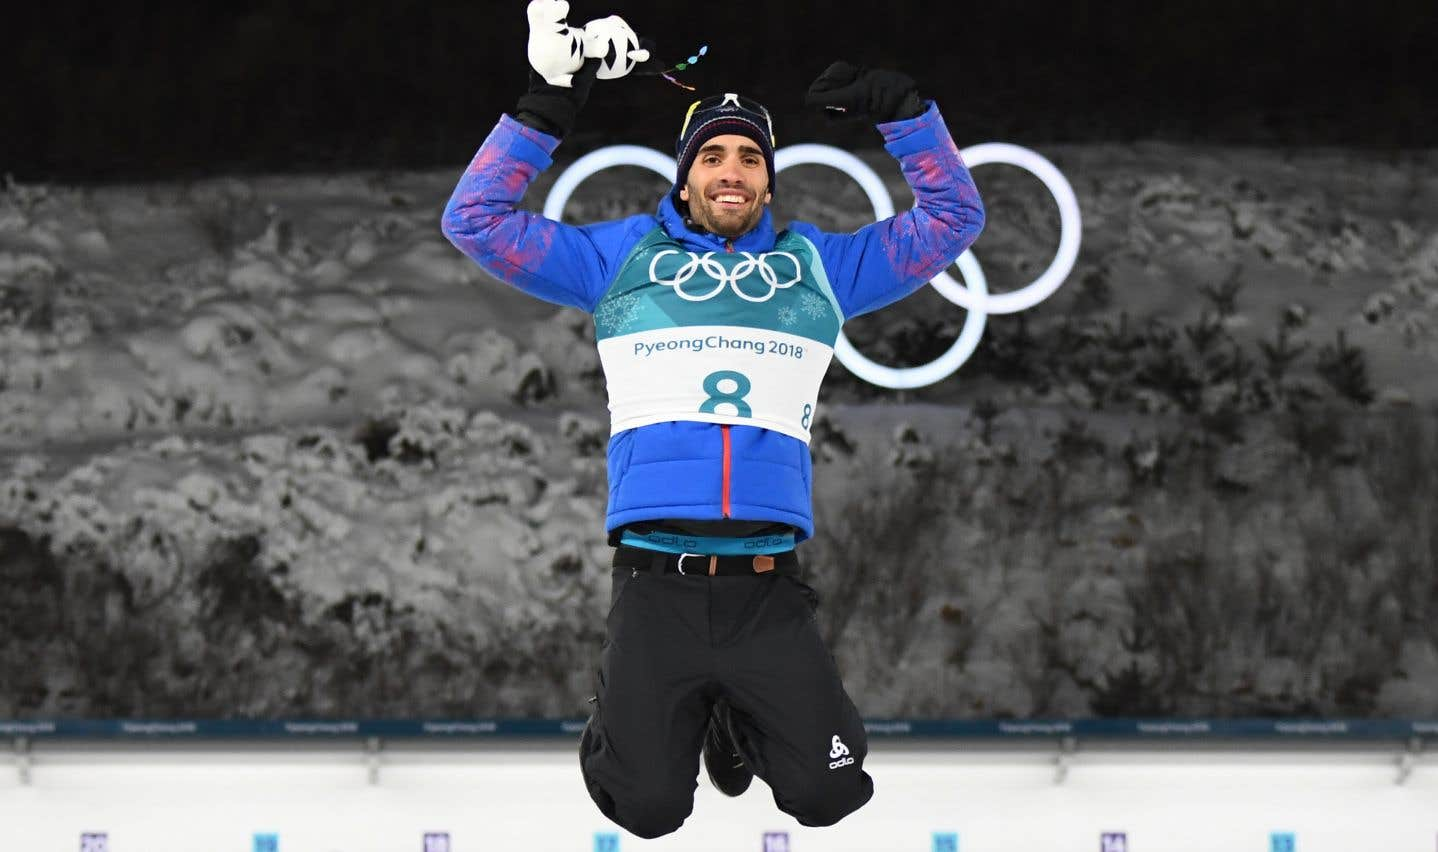 Martin Fourcade rejoint Jean-Claude Killy